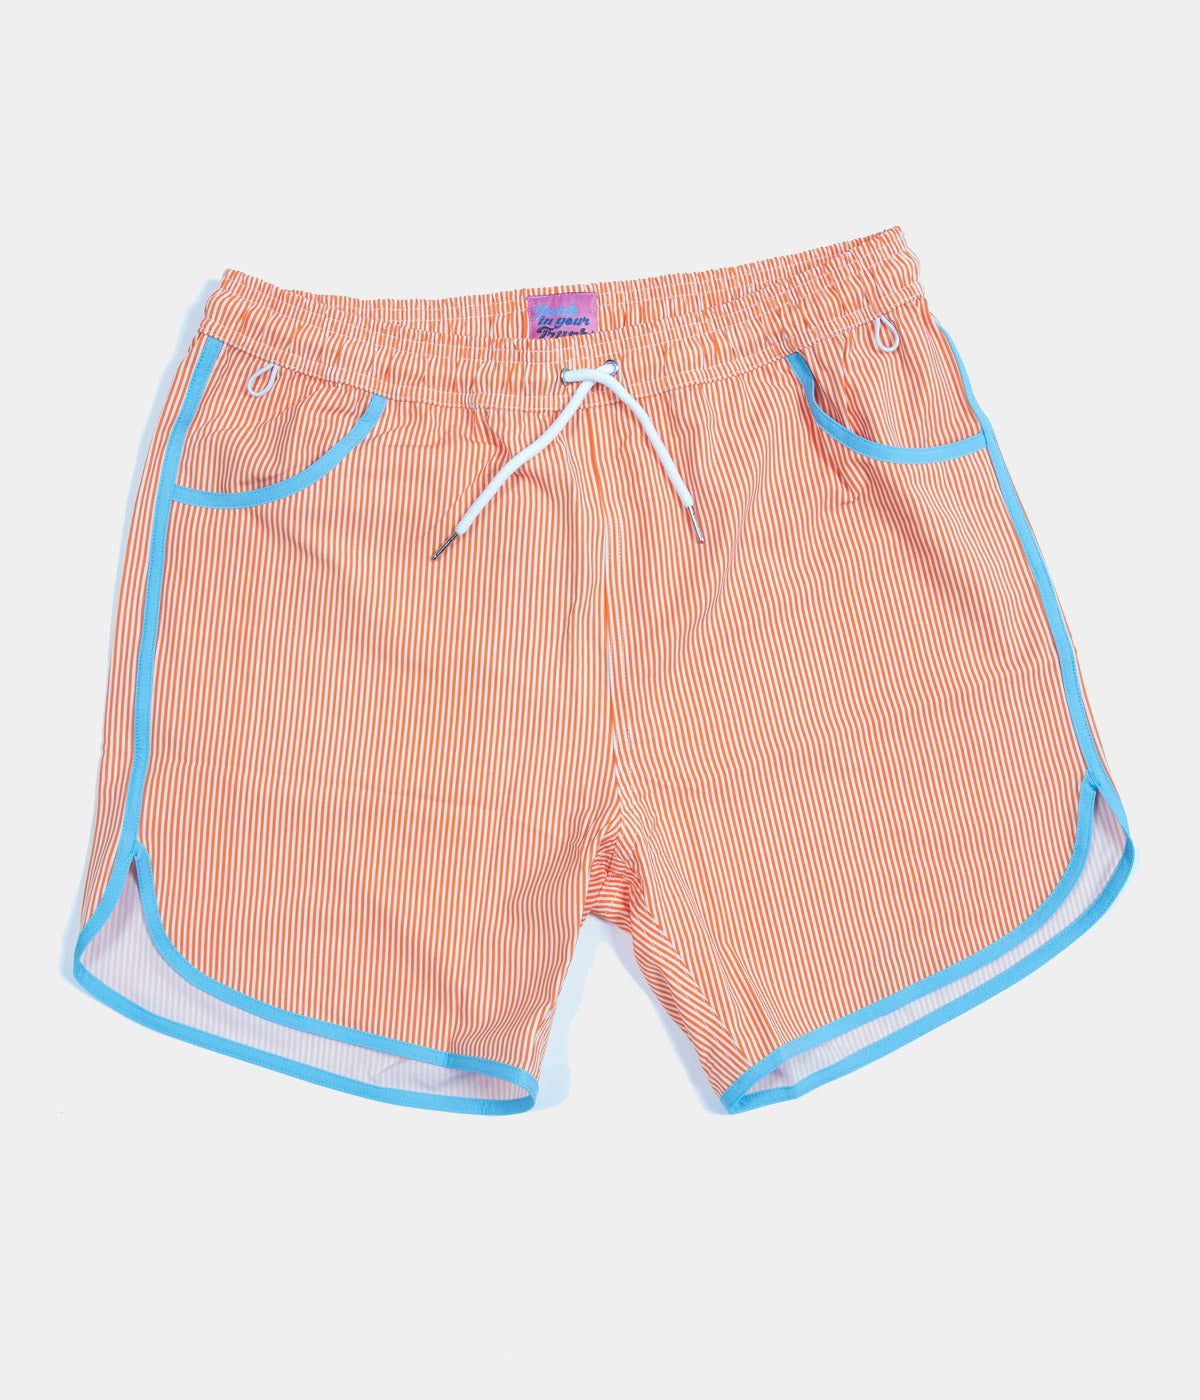 Junk in Your Trunks Pinstripe Swim Trunks